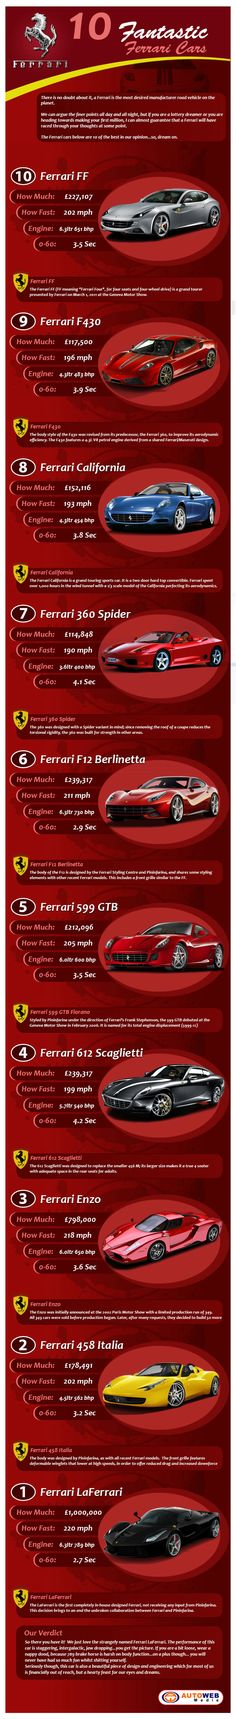 Ferrari Production Cars 10 Greatest Ferrari Production Cars of All Time | BrandonGaille.com